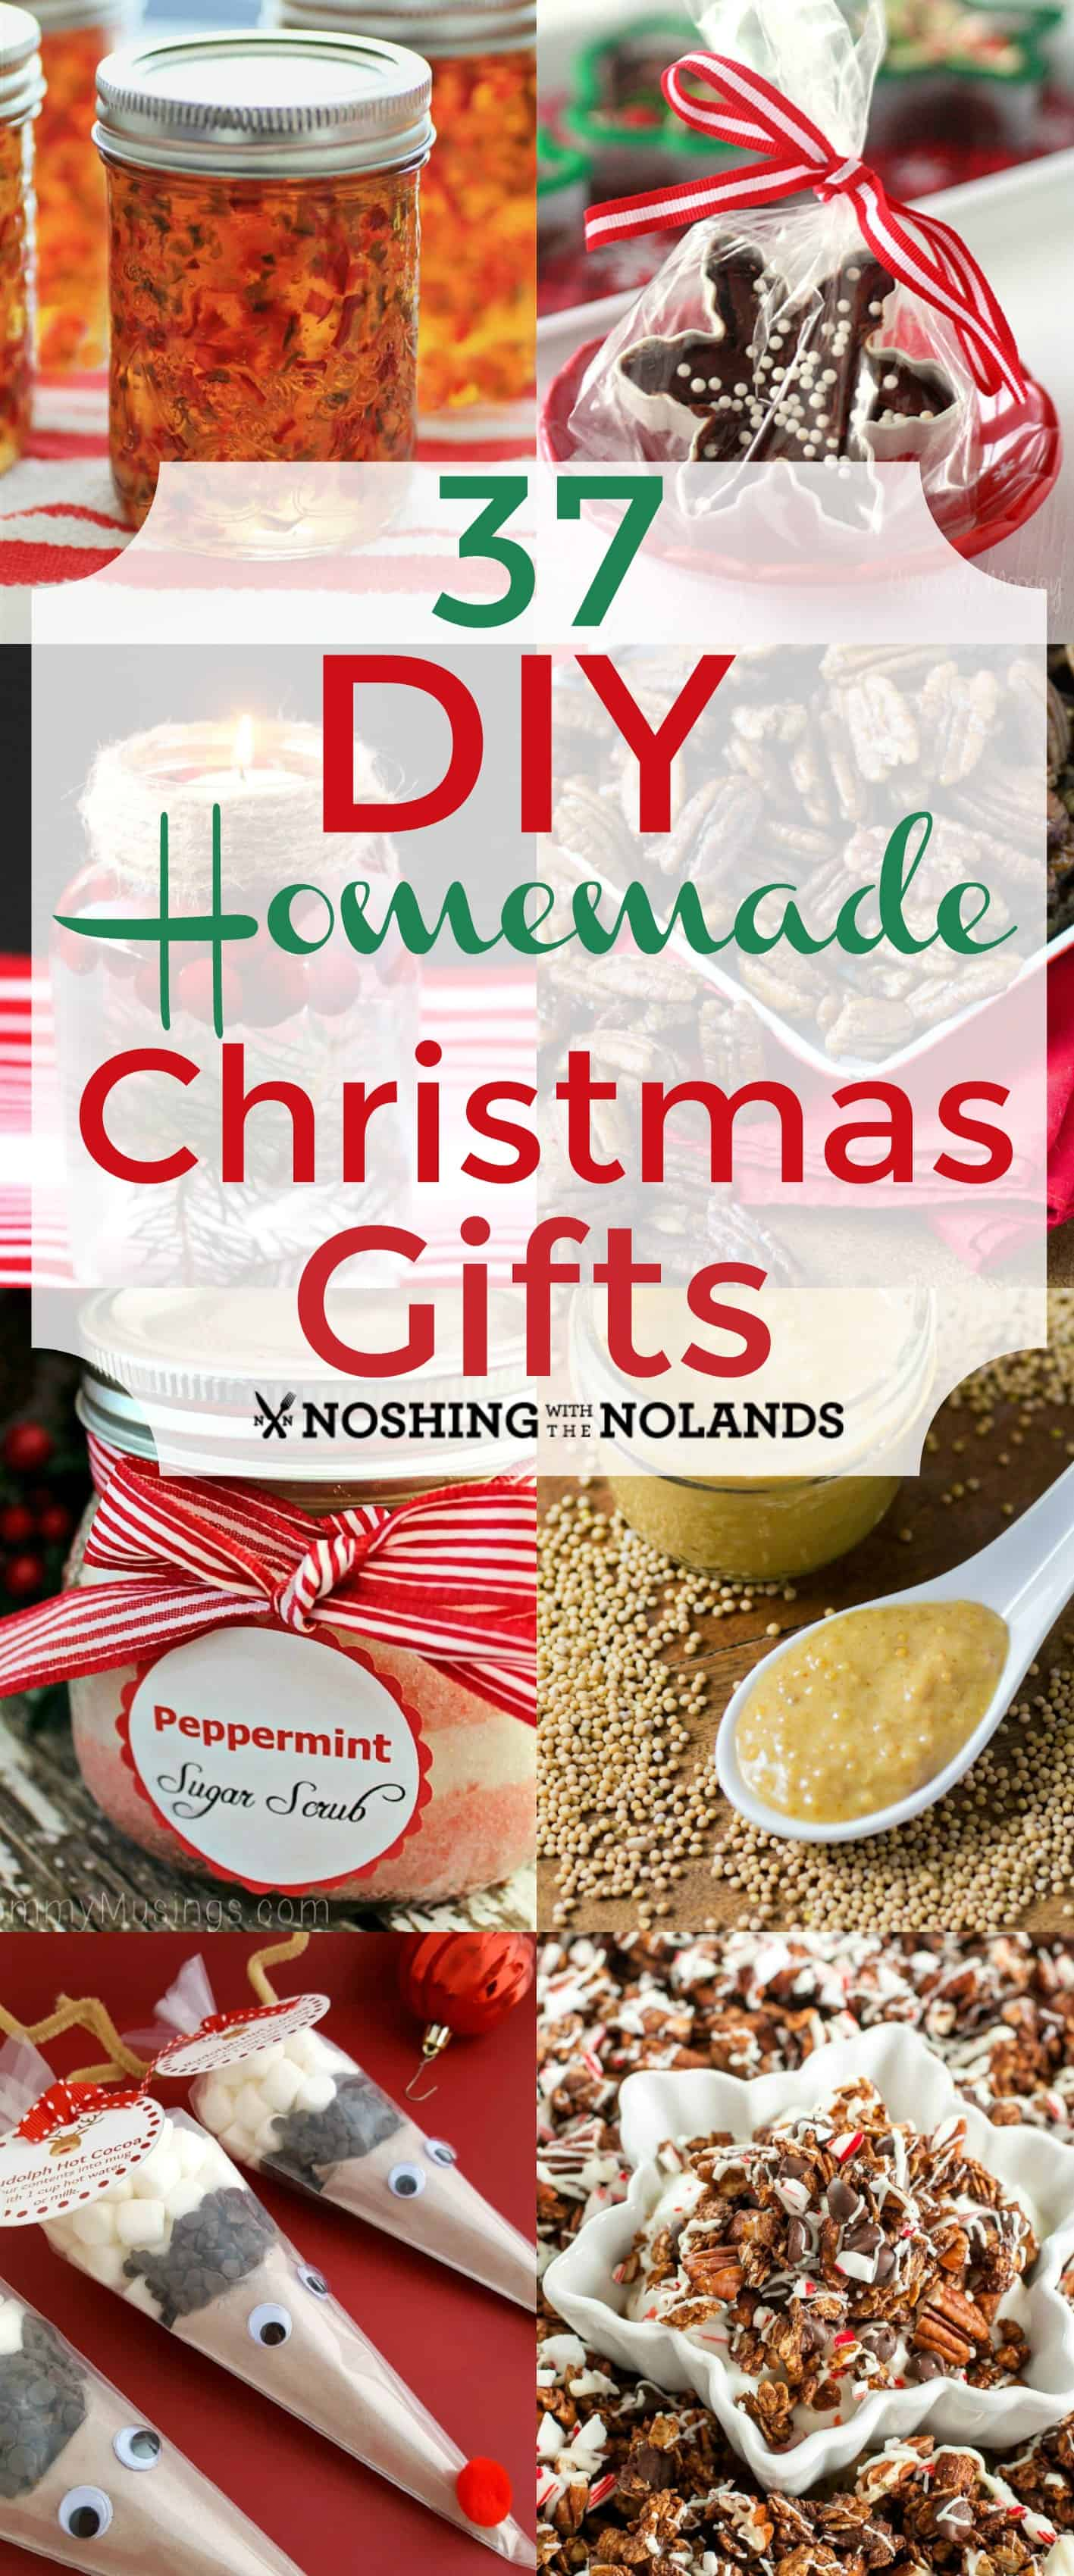 37 DIY Homemade Christmas Gifts